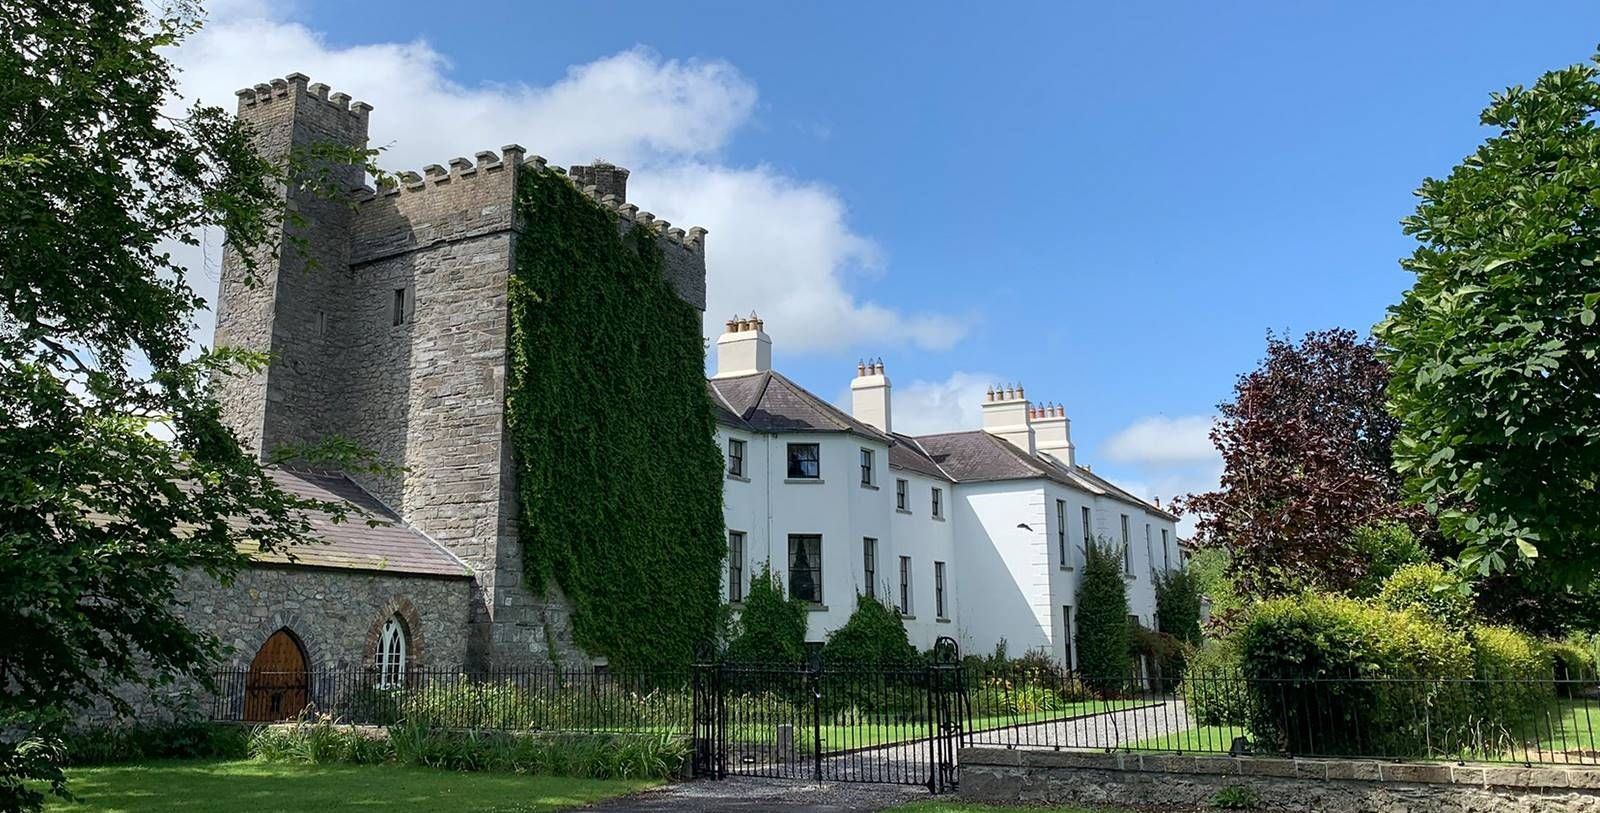 Image of hotel exterior Barberstown Castle, 1288, Member of Historic Hotels Worldwide, in Straffan, Ireland, Overview